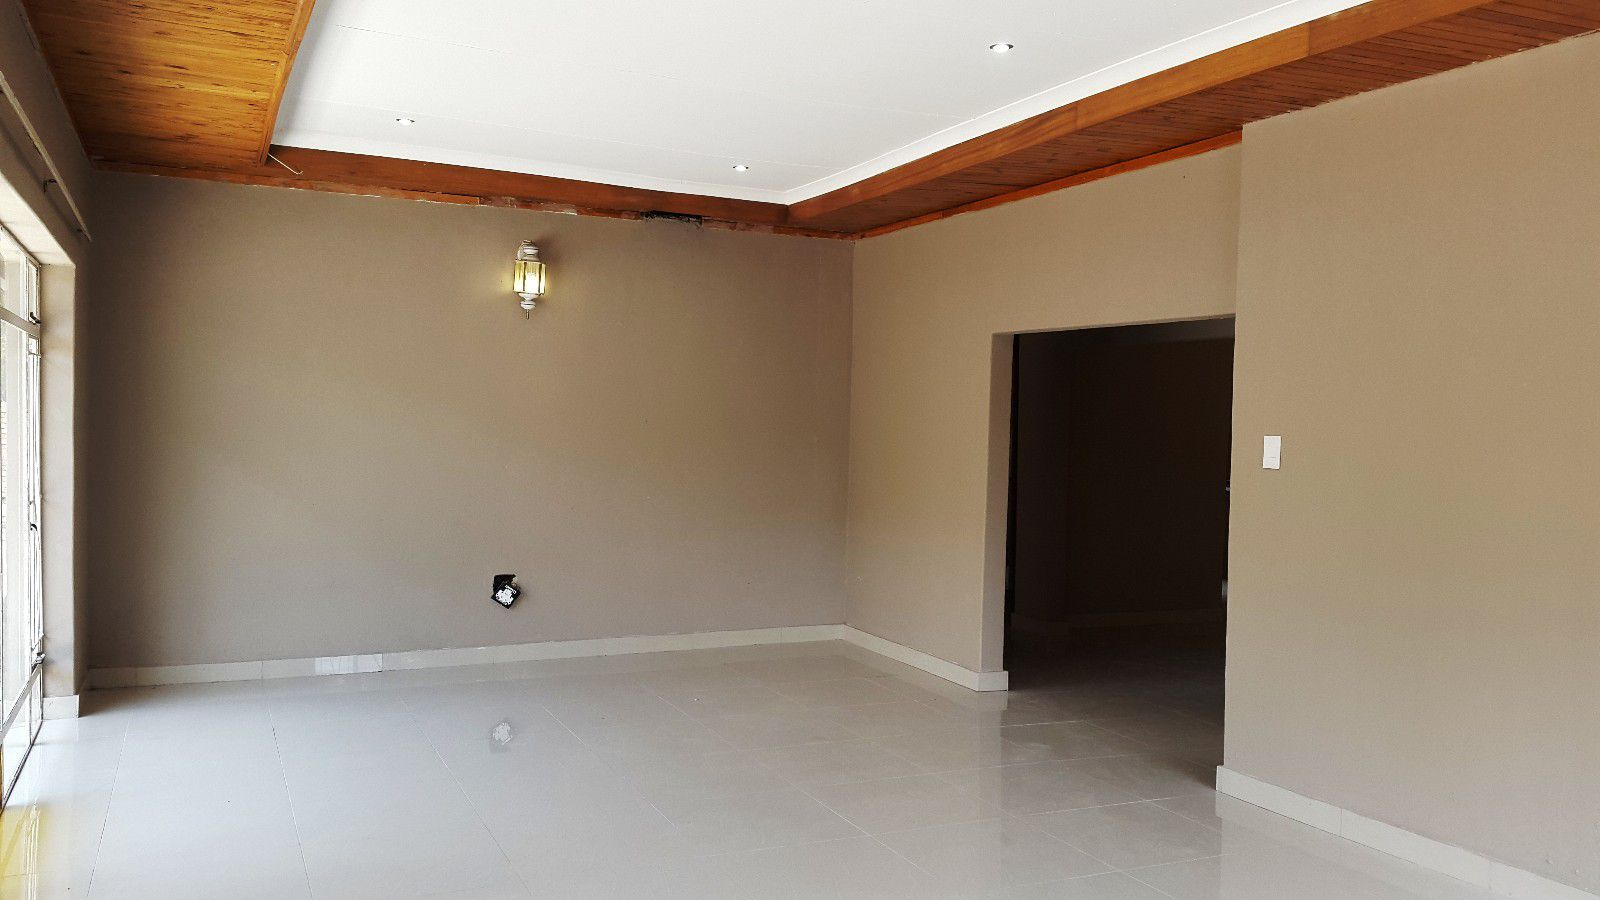 Potchefstroom Central property for sale. Ref No: 13410360. Picture no 4